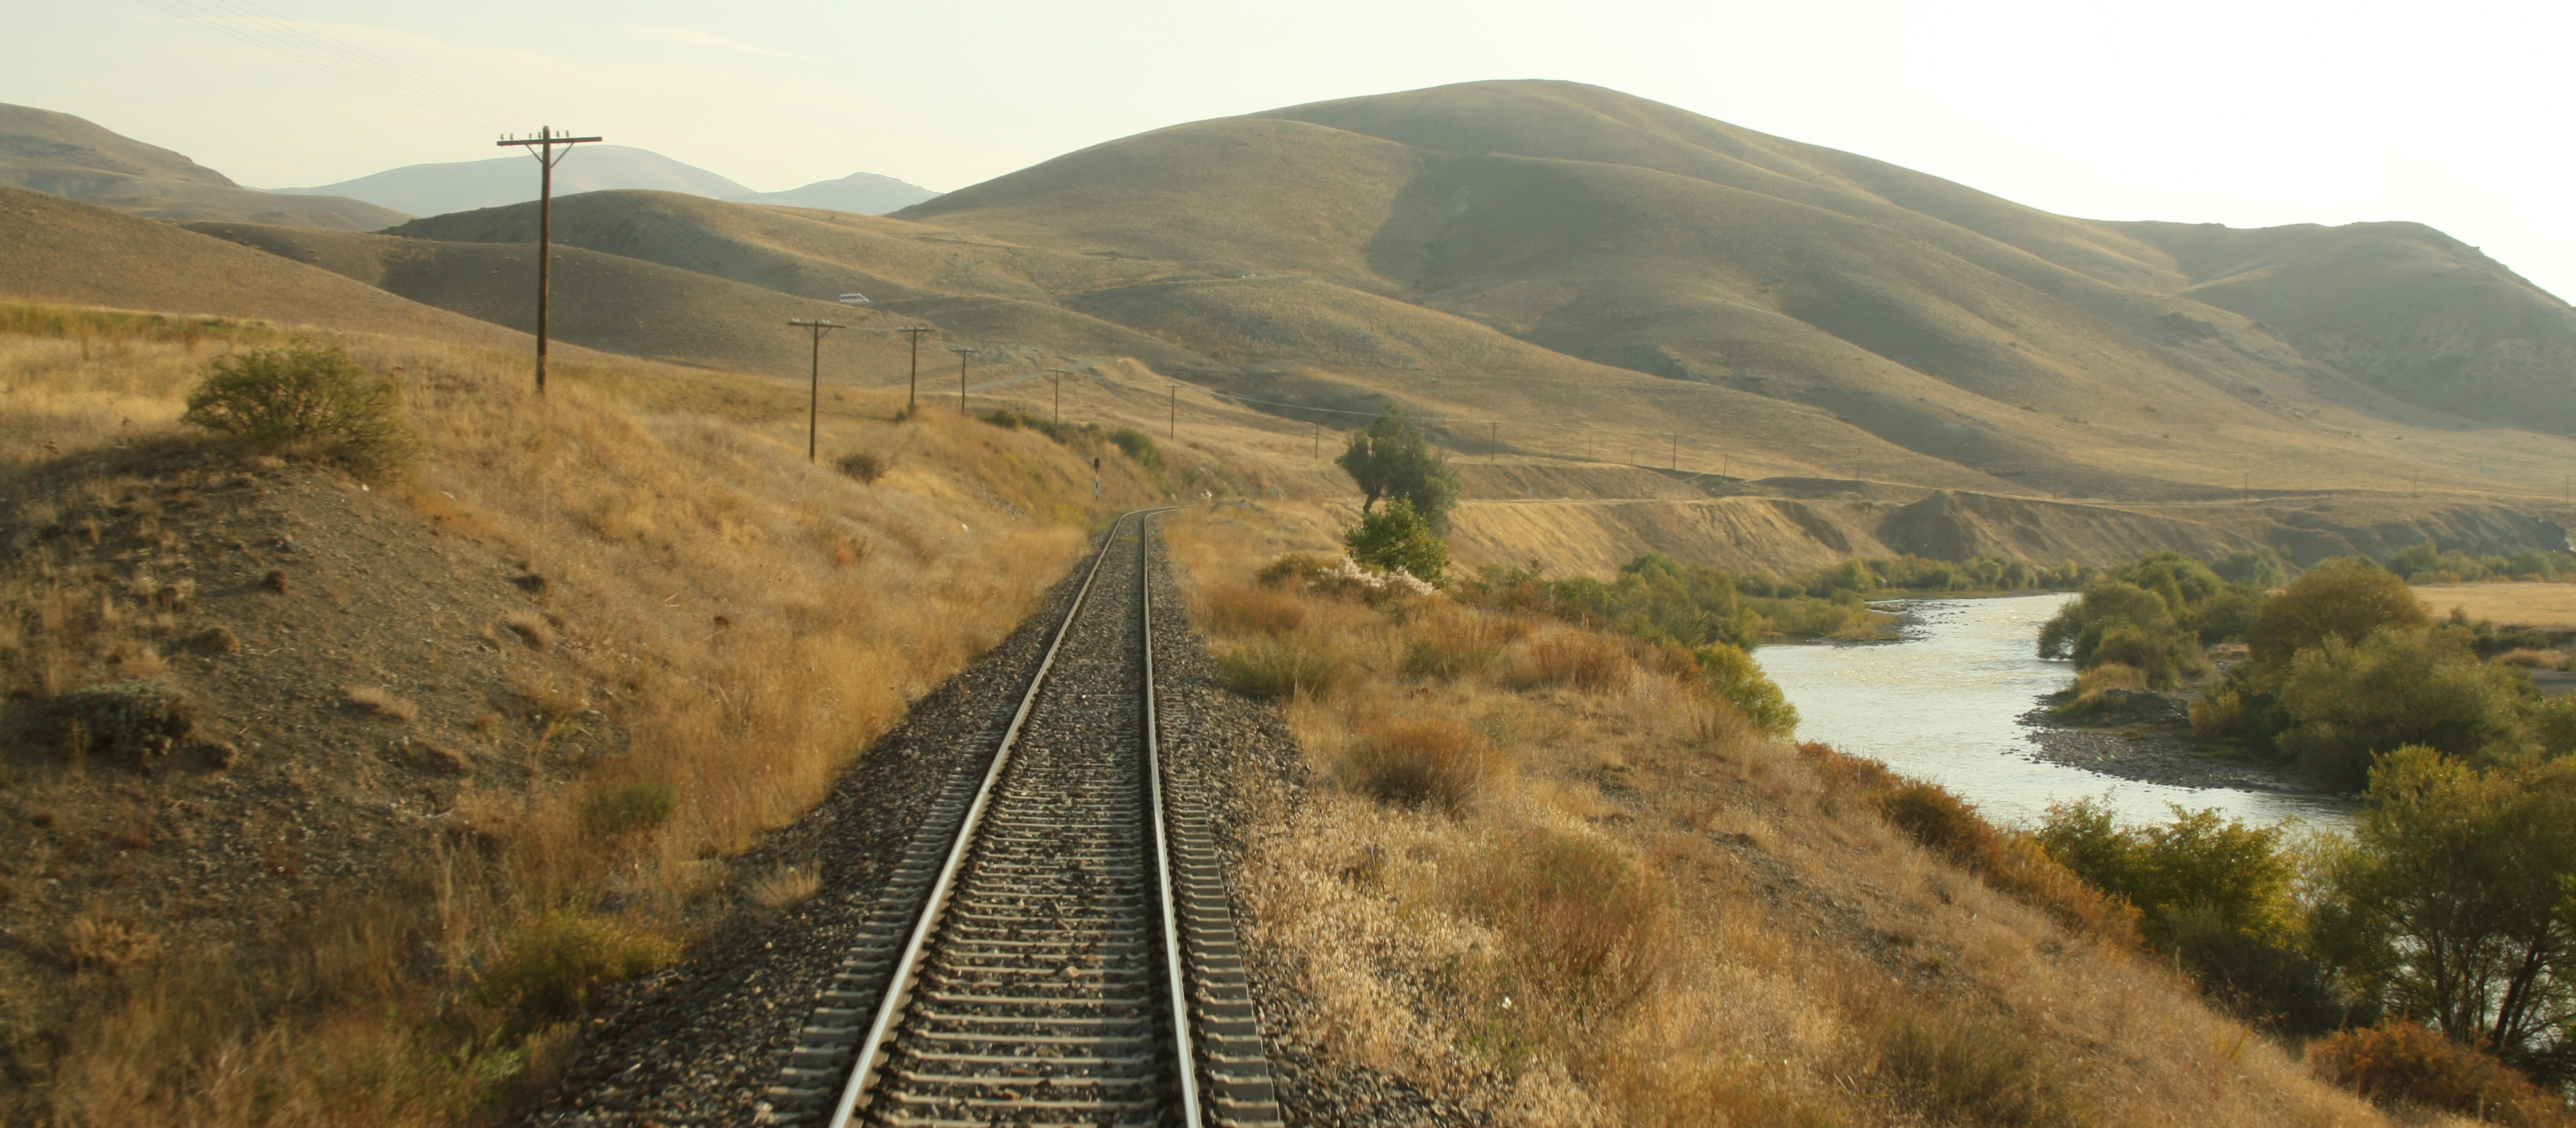 Train line through East Anatolia